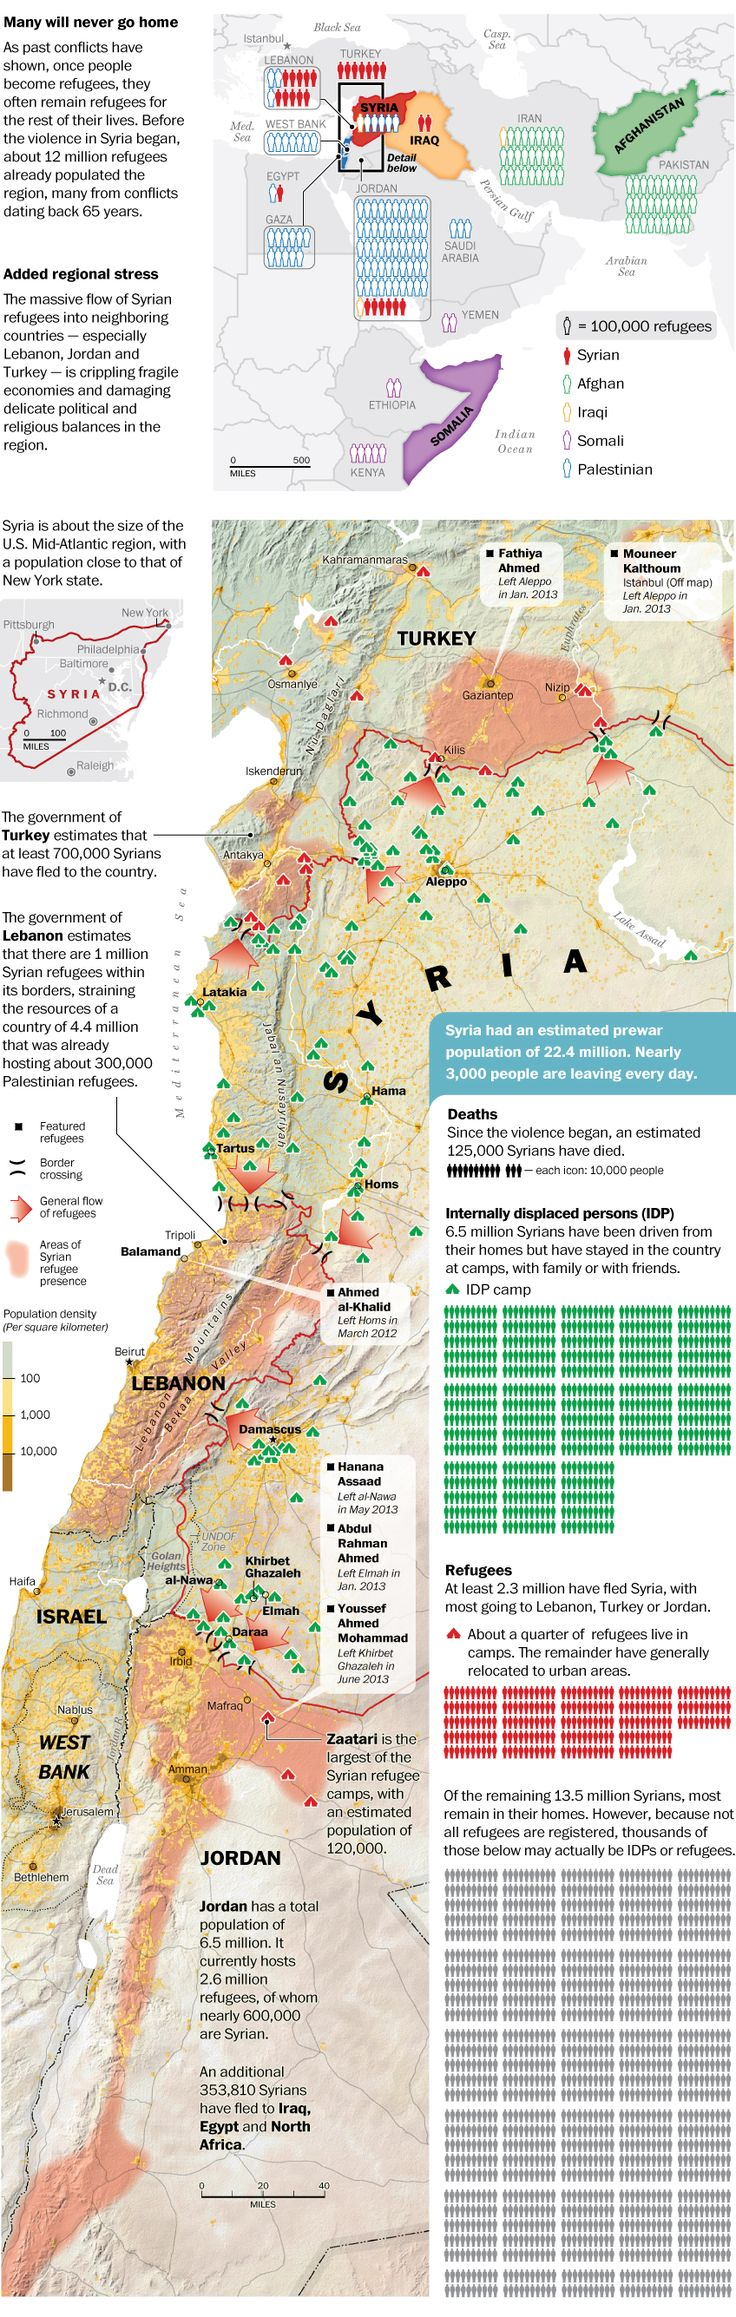 More than 2 1/2 years of violence has ravaged Syria. About 40 percent of its people have been displaced, including millions who have fled th...